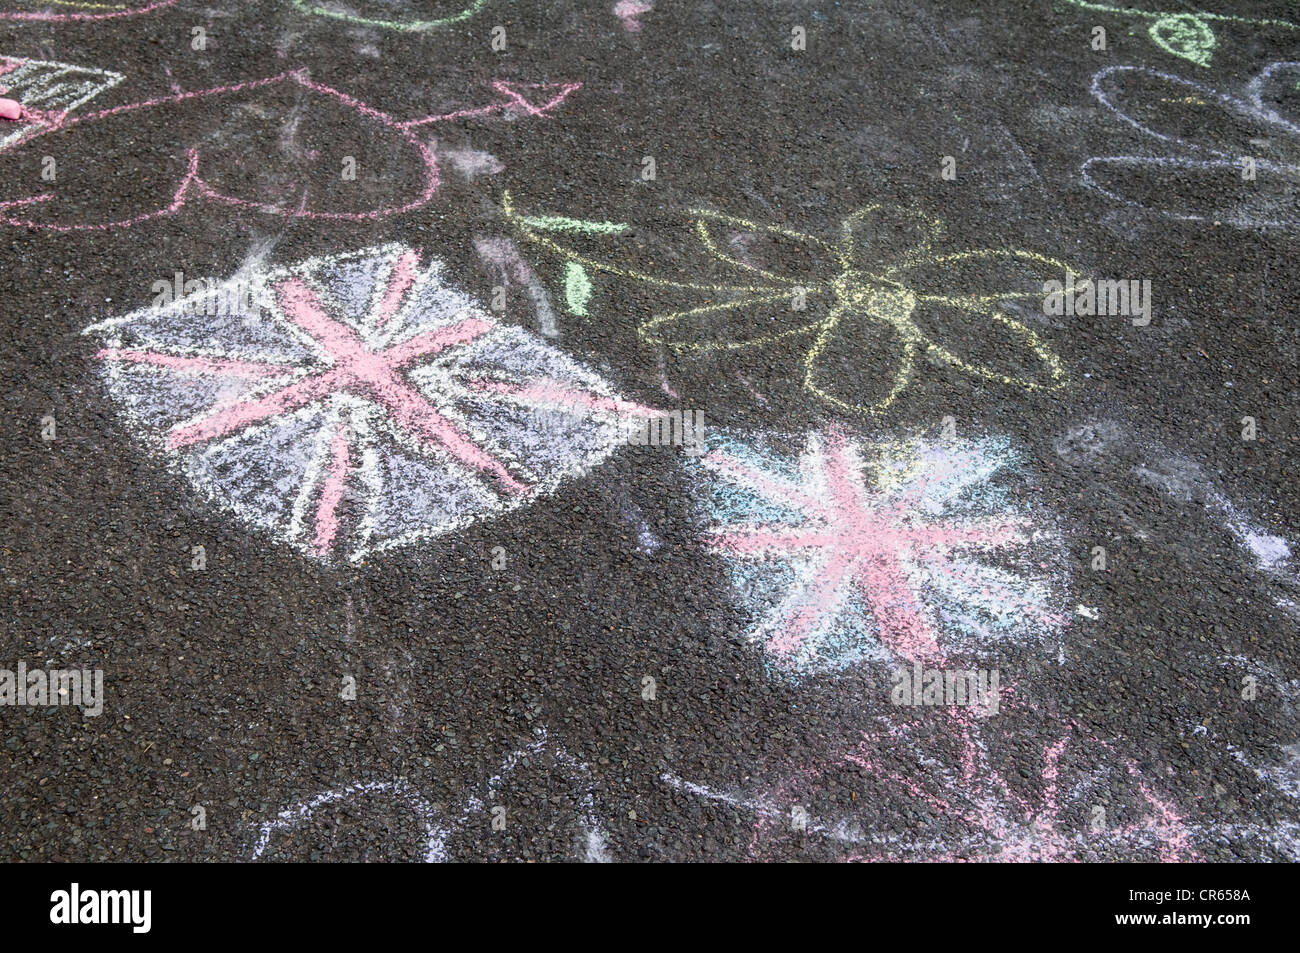 Dessins de craie Graffiti Union jack flag sur la route goudronnée à Bristol effectué par les enfants Photo Stock